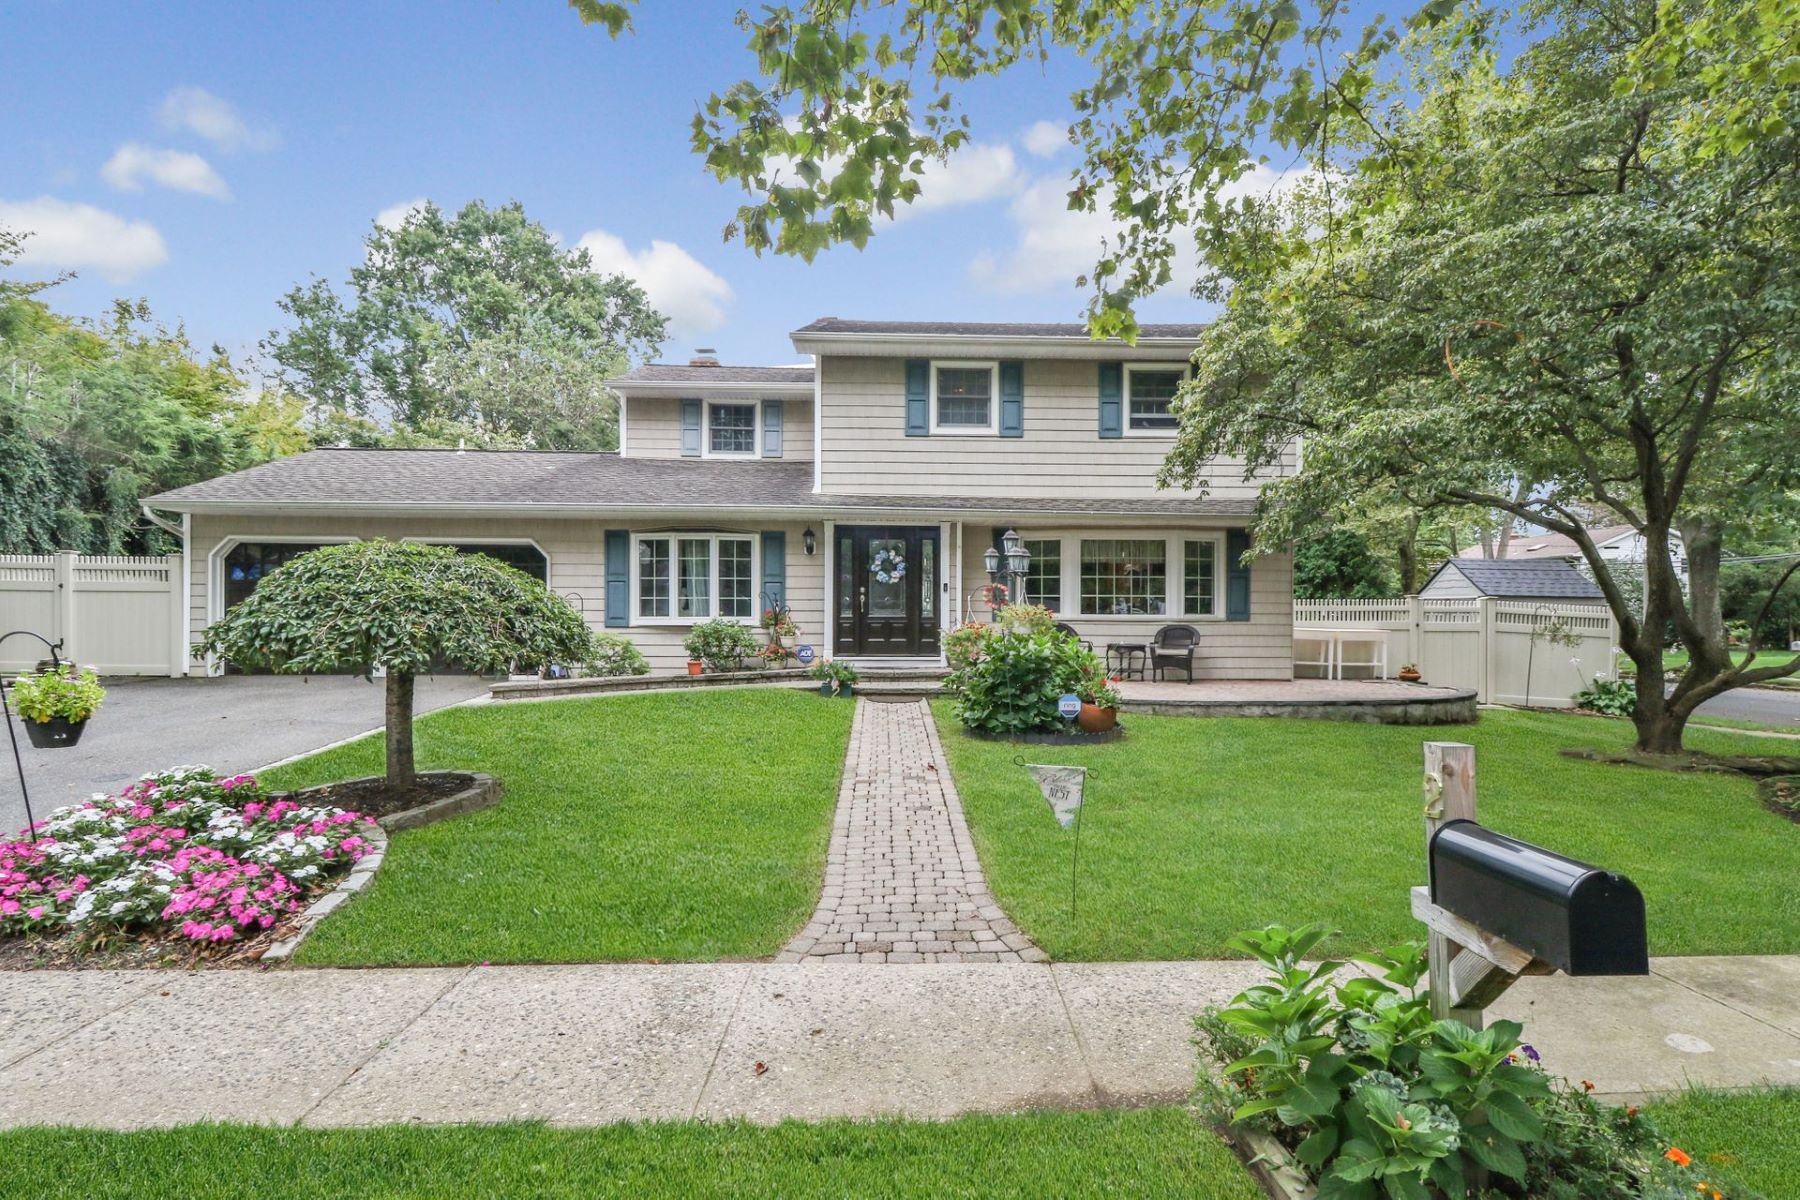 Single Family Homes for Sale at Greenlawn 2 Frost Pond Rd Greenlawn, New York 11740 United States